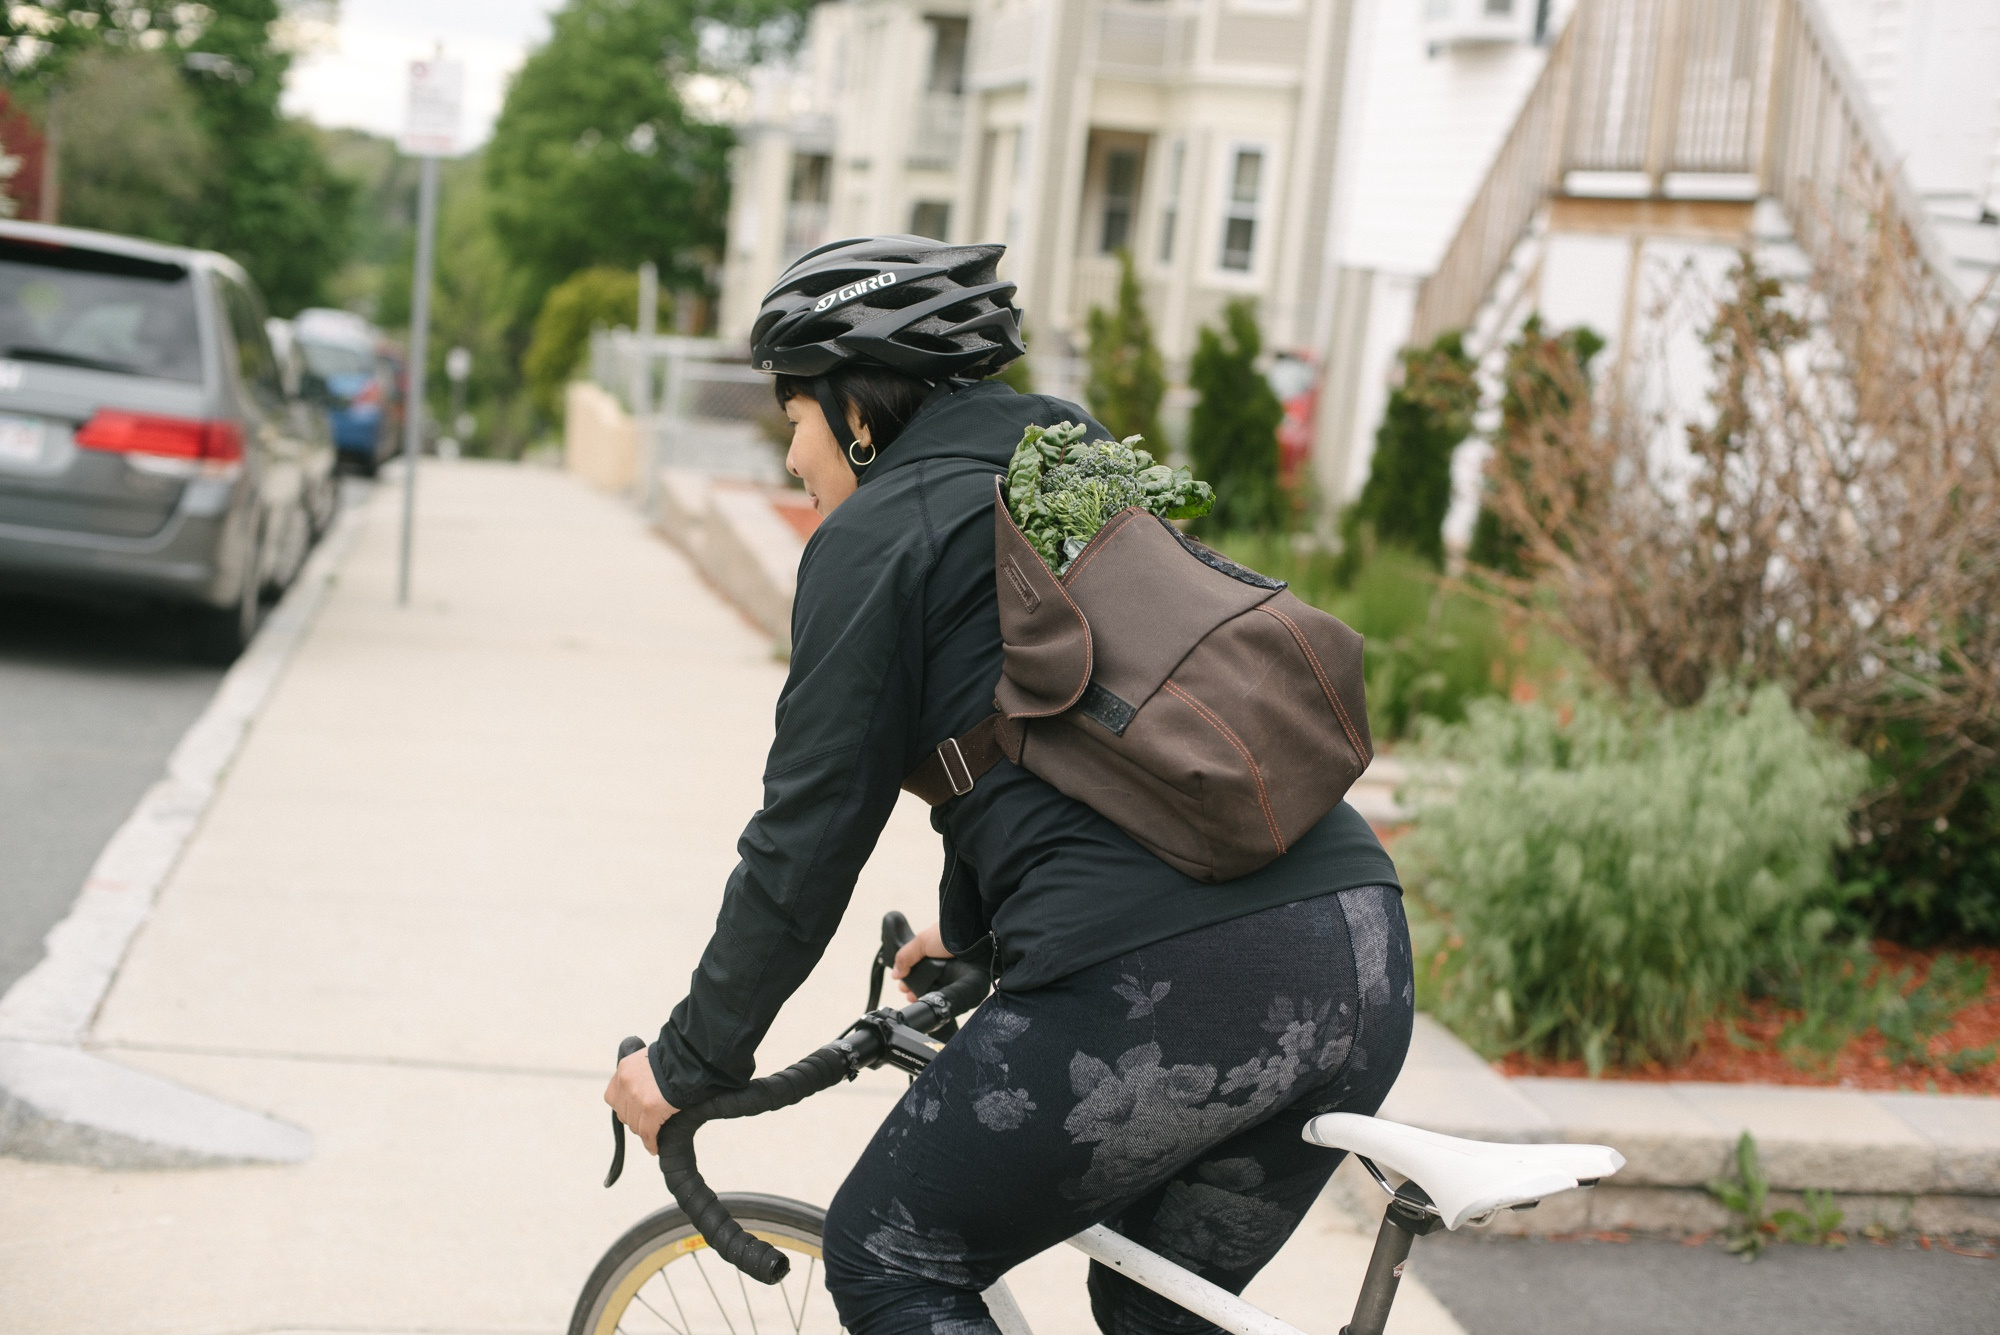 Boston Organics - Cycle to Work